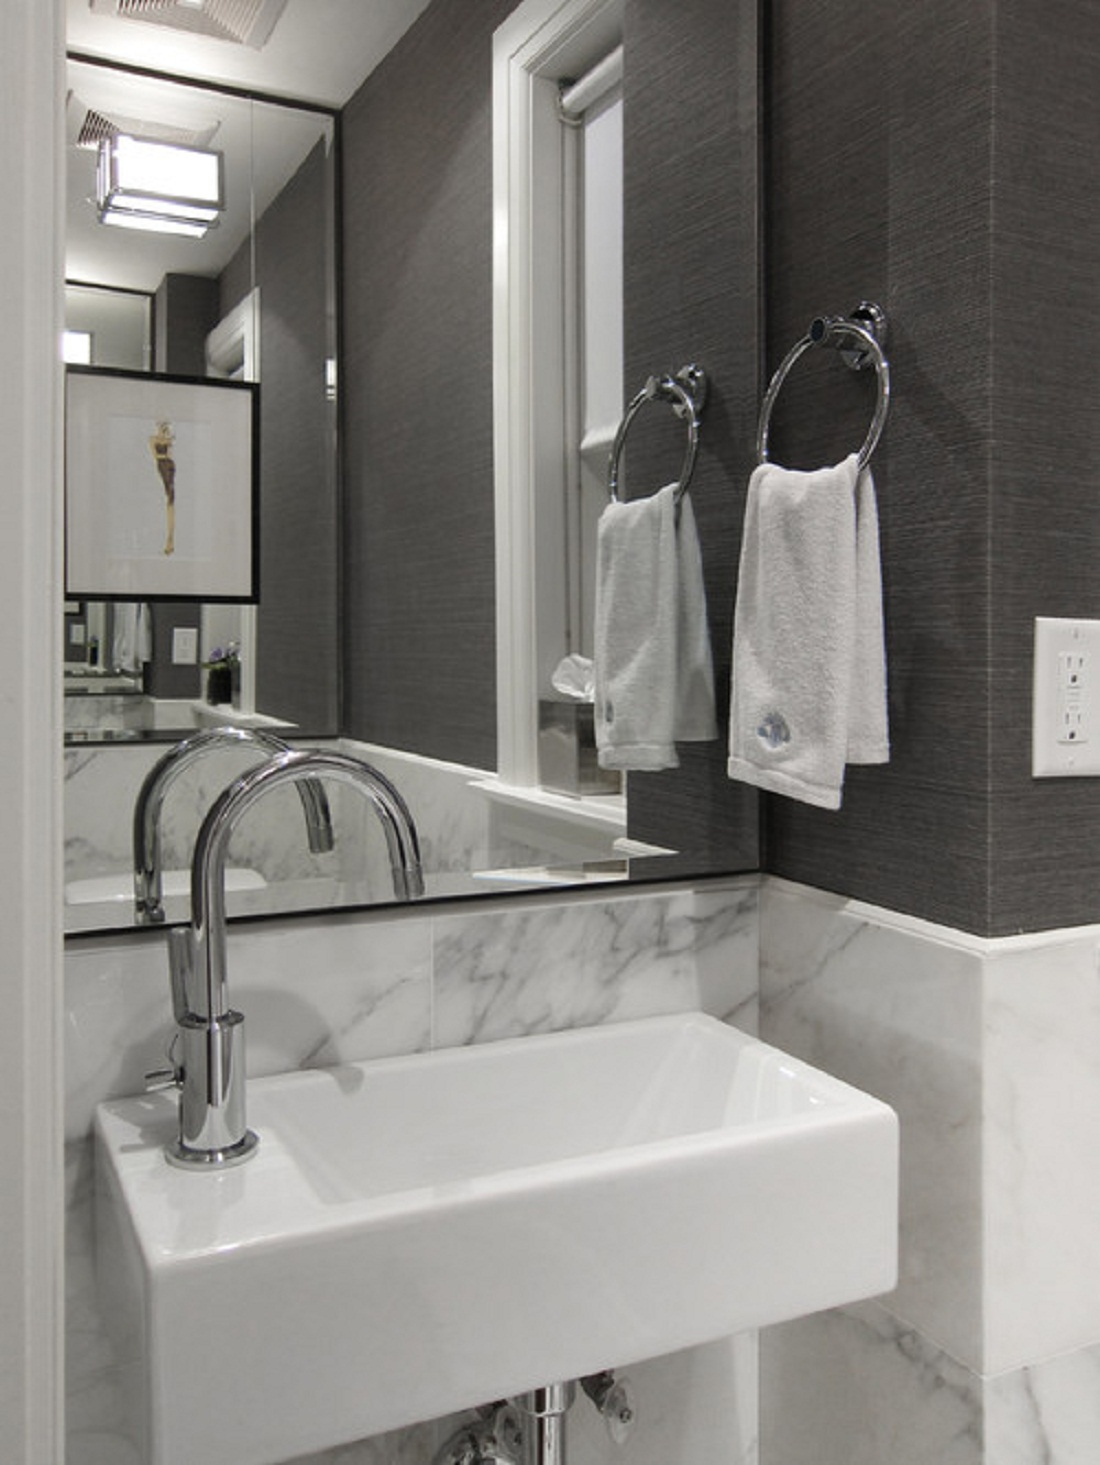 Tips for selecting the right small bathroom sinks for a - Bath shower room ...